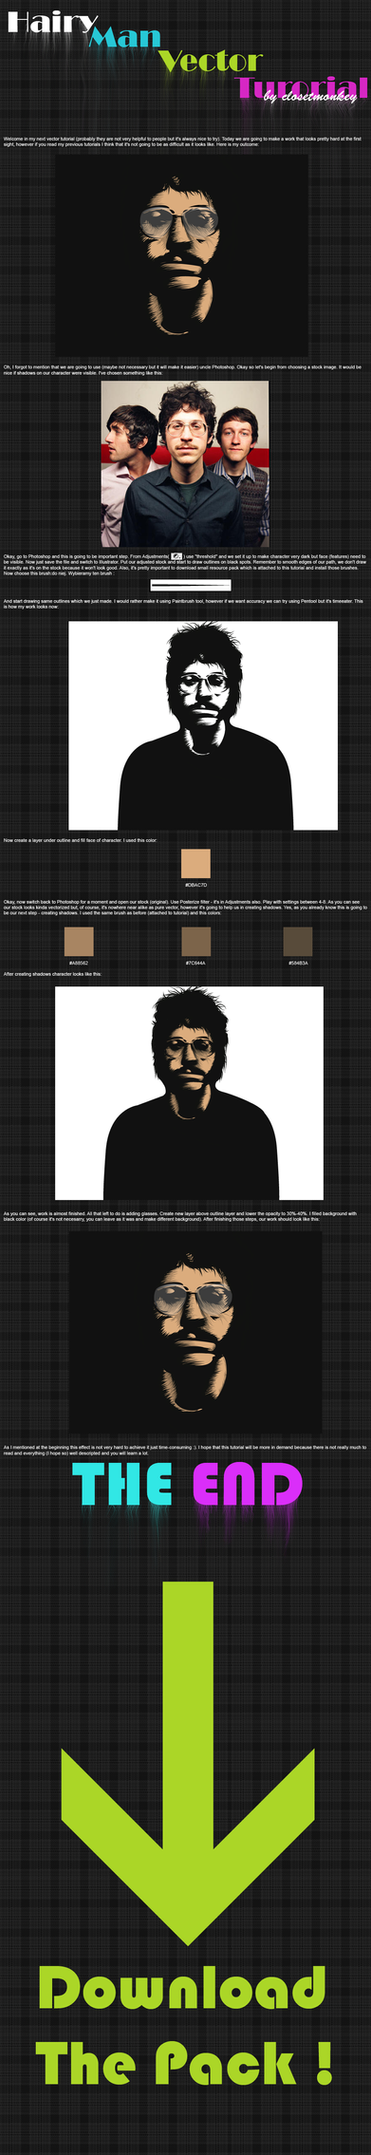 Hairy Man Vector tut - Eng by JDog0601